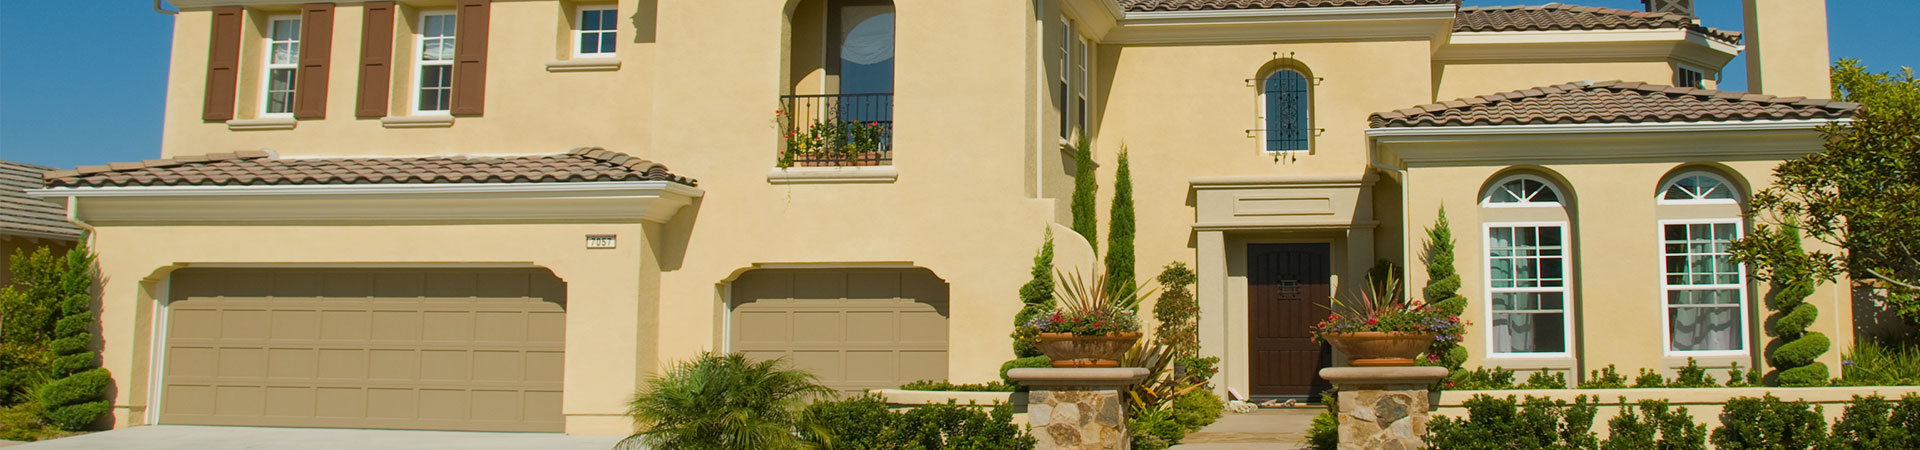 San Diego's Best Residential Painting